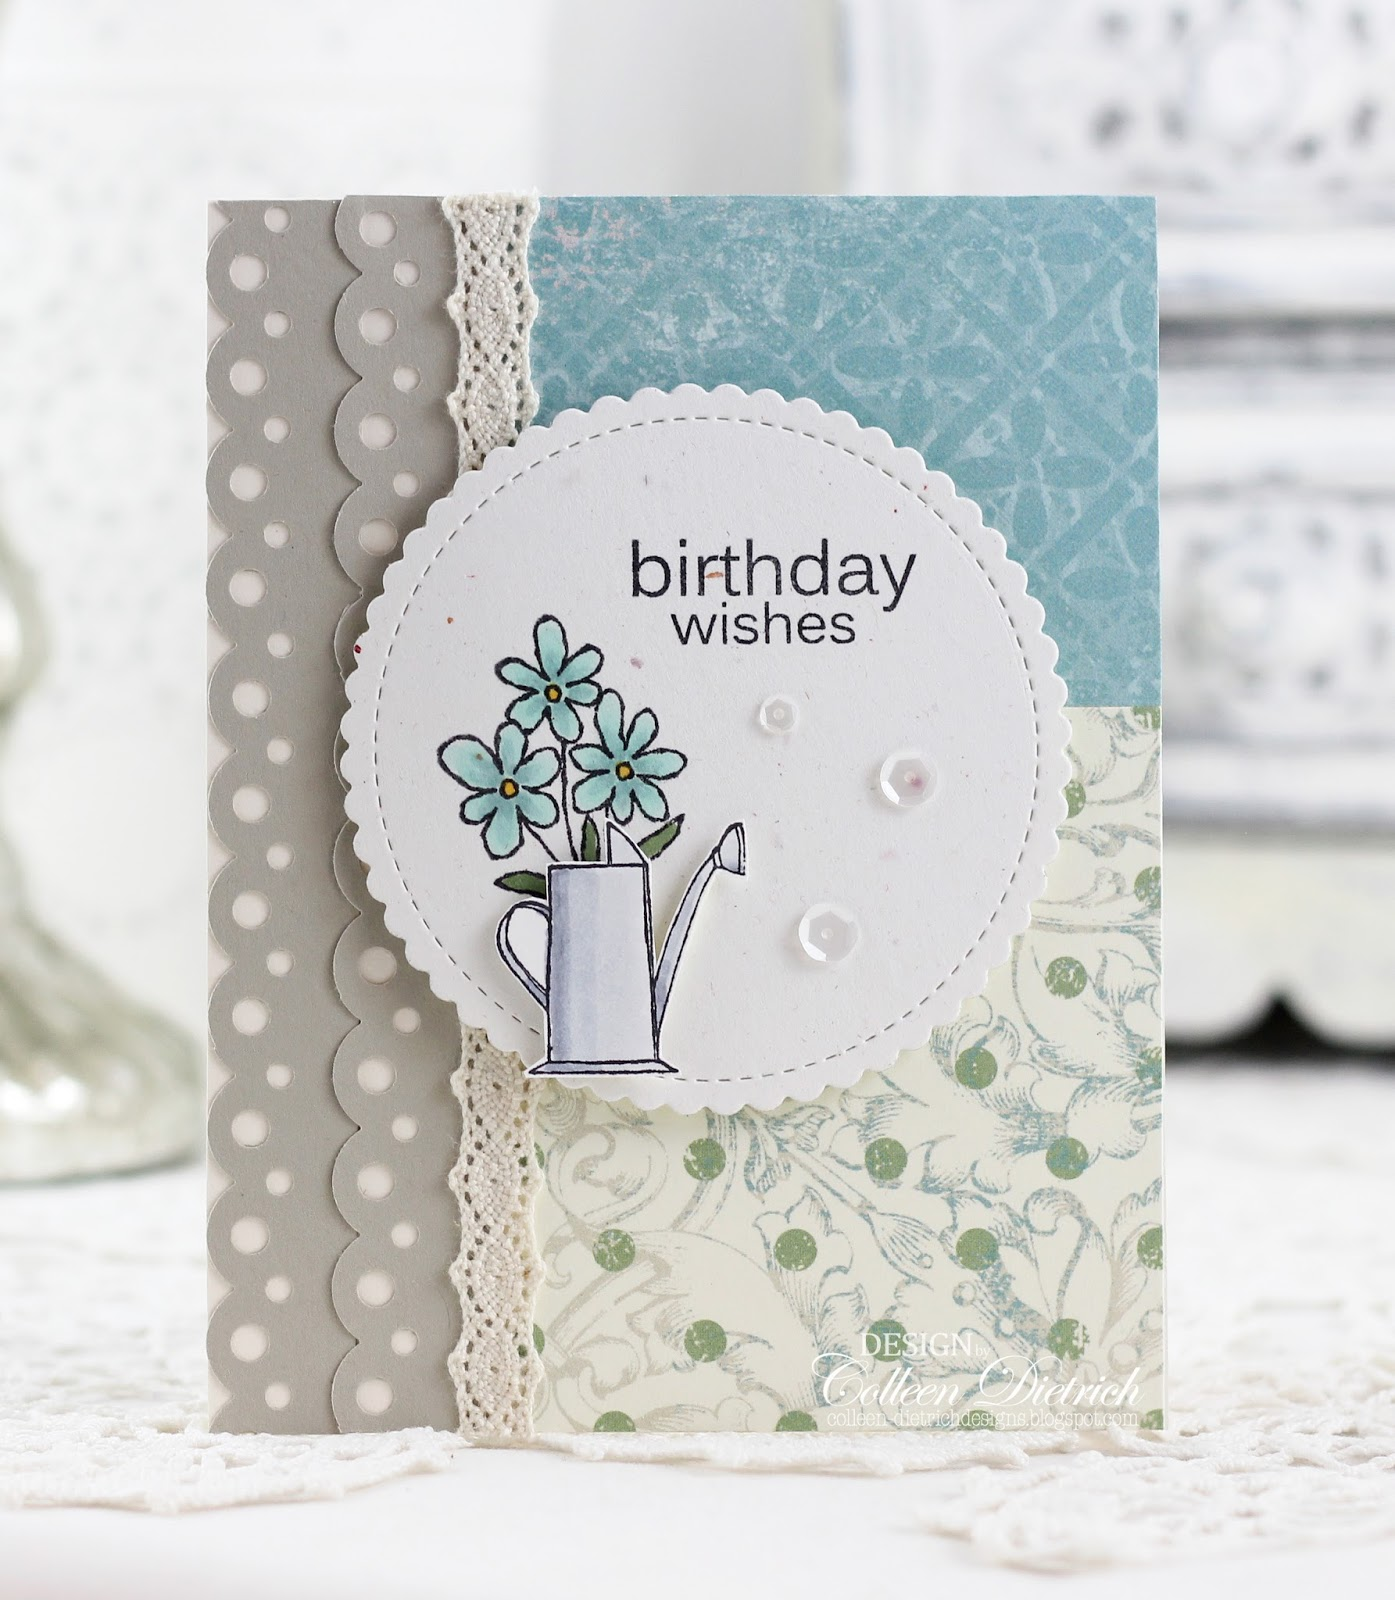 Watering can wishes | Colleen Dietrich Designs